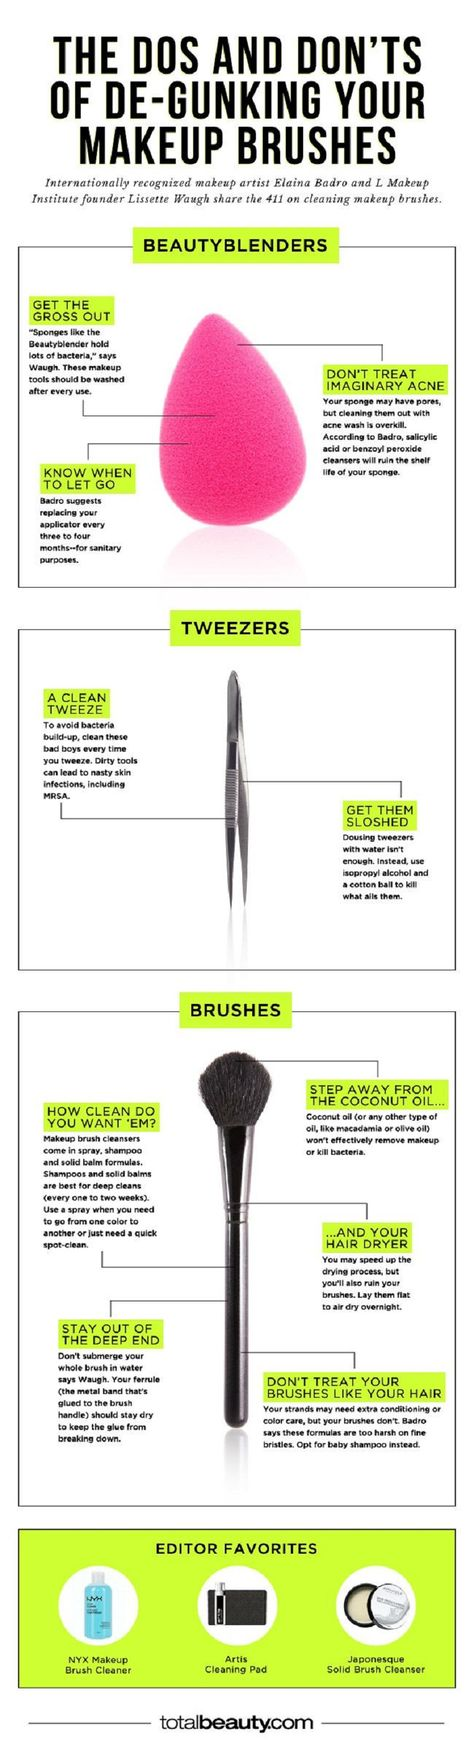 Guide of Makeup Brush Cleaning - 12 Homemade DIY Makeup Brush Cleaners   GleamItUp